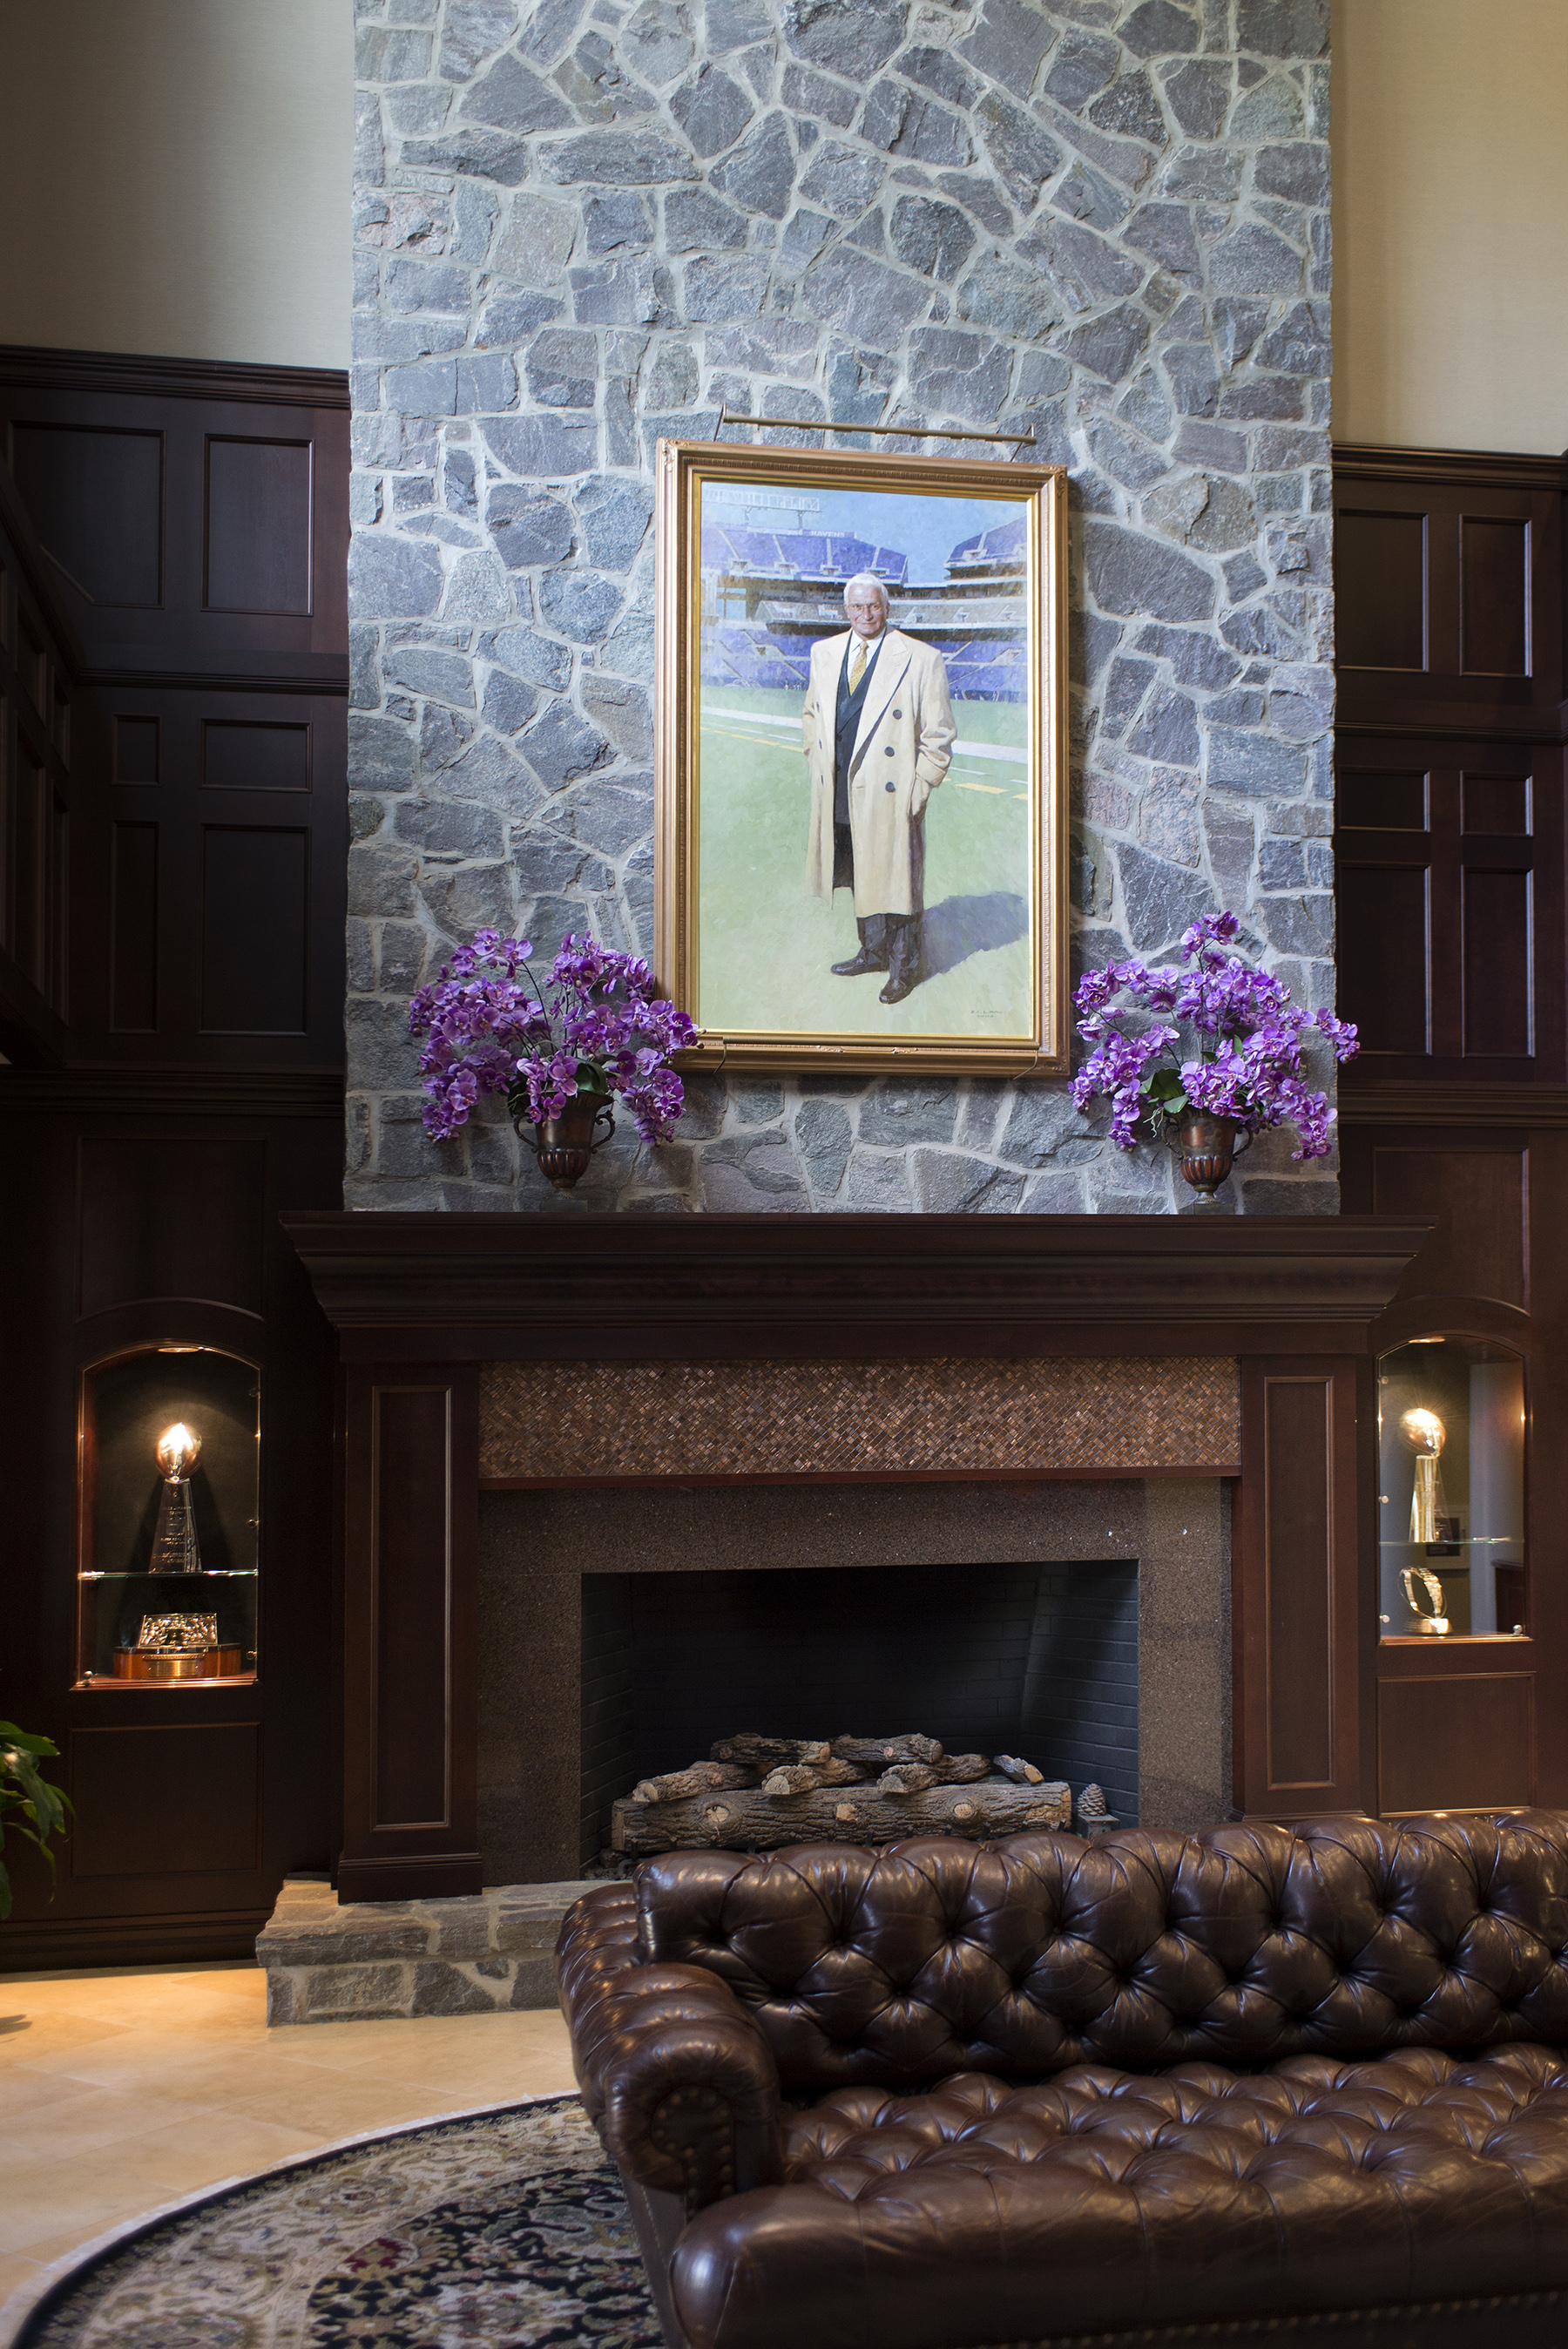 fireplace with large portrait hanging above